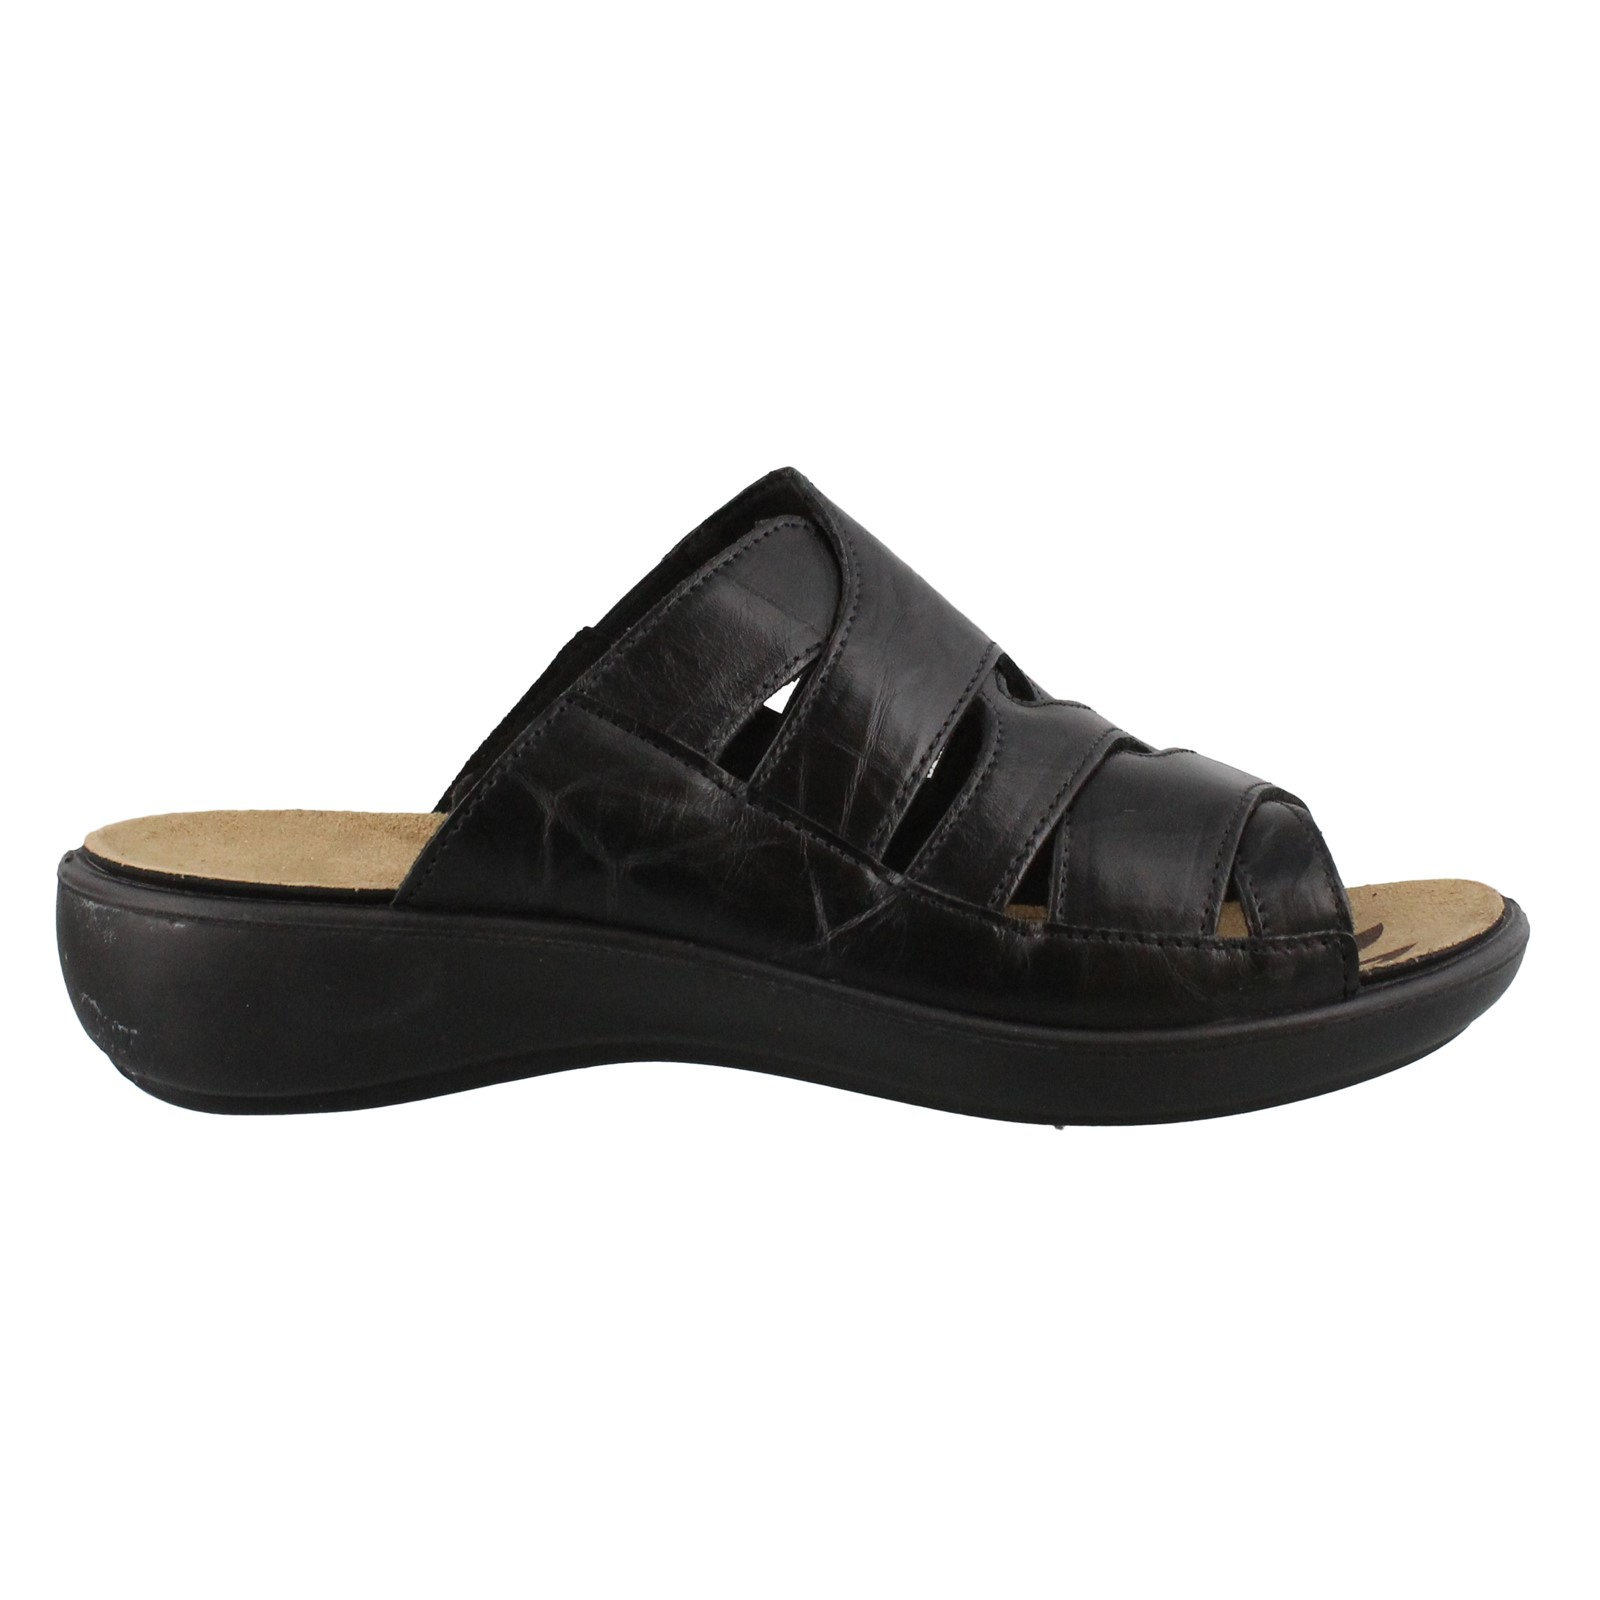 Women's Romika, Ibiza 87 Slide Sandals